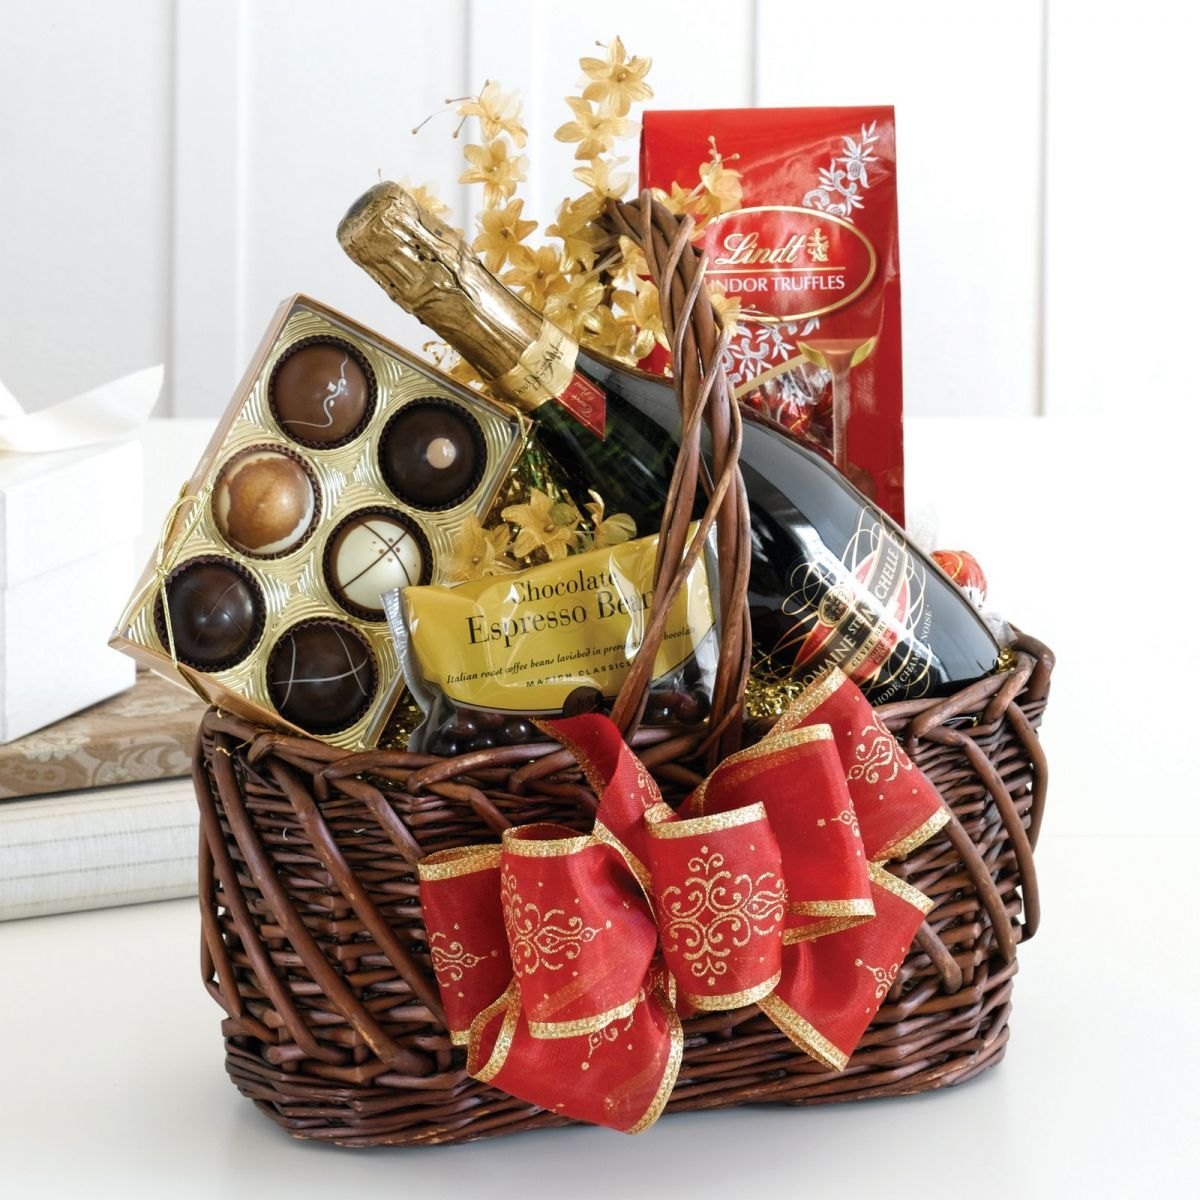 Christmas Gift Baskets Ideas.Ideas For Making A Chocolate Gift Basket Miscellaneous